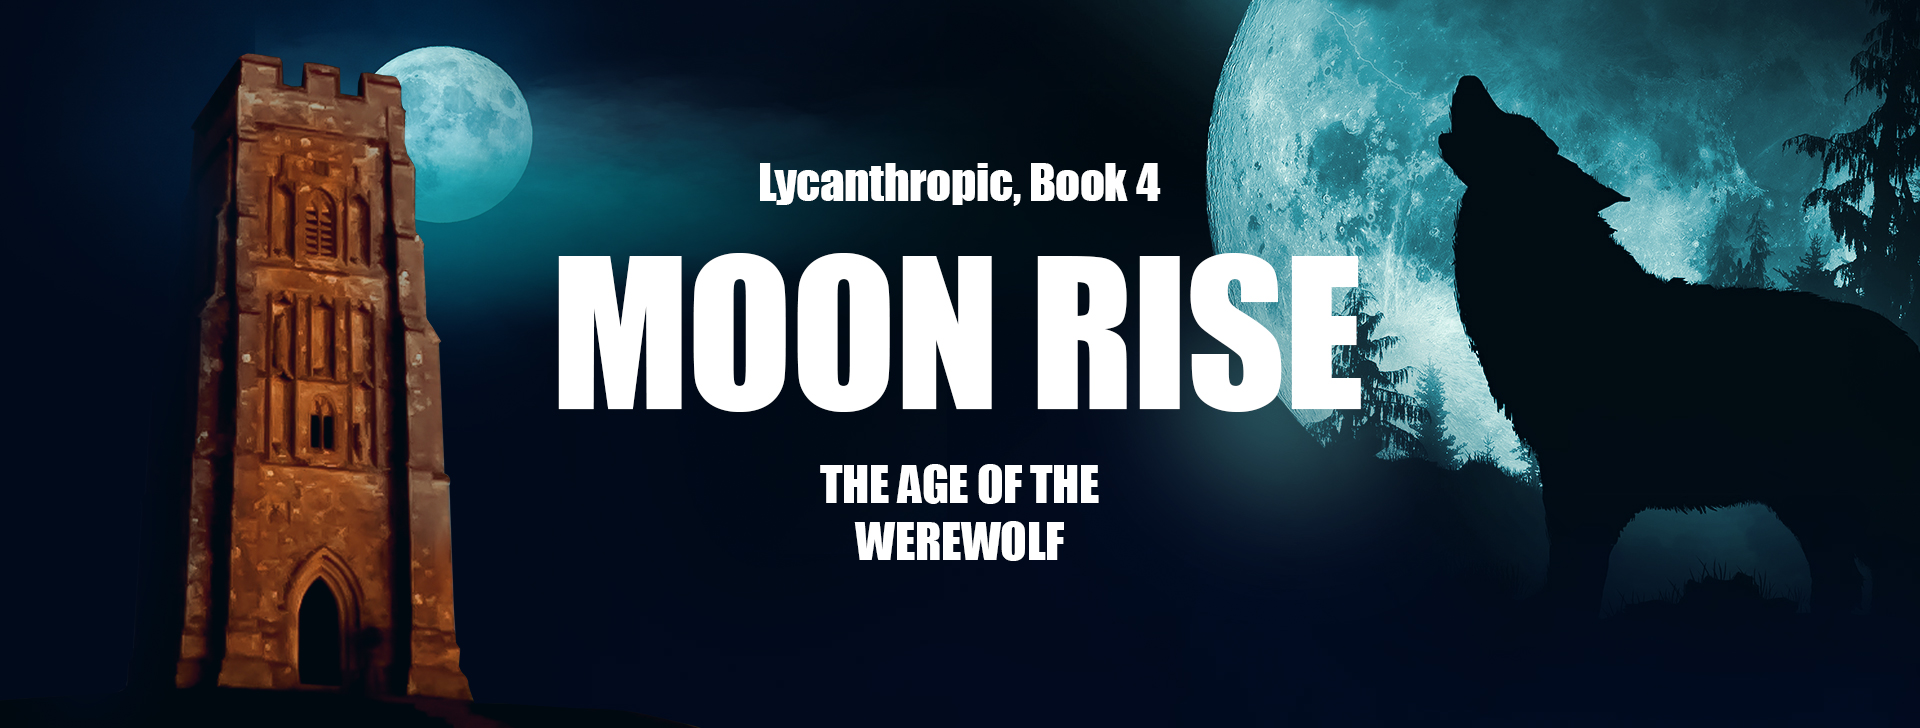 The Age of the Werewolf